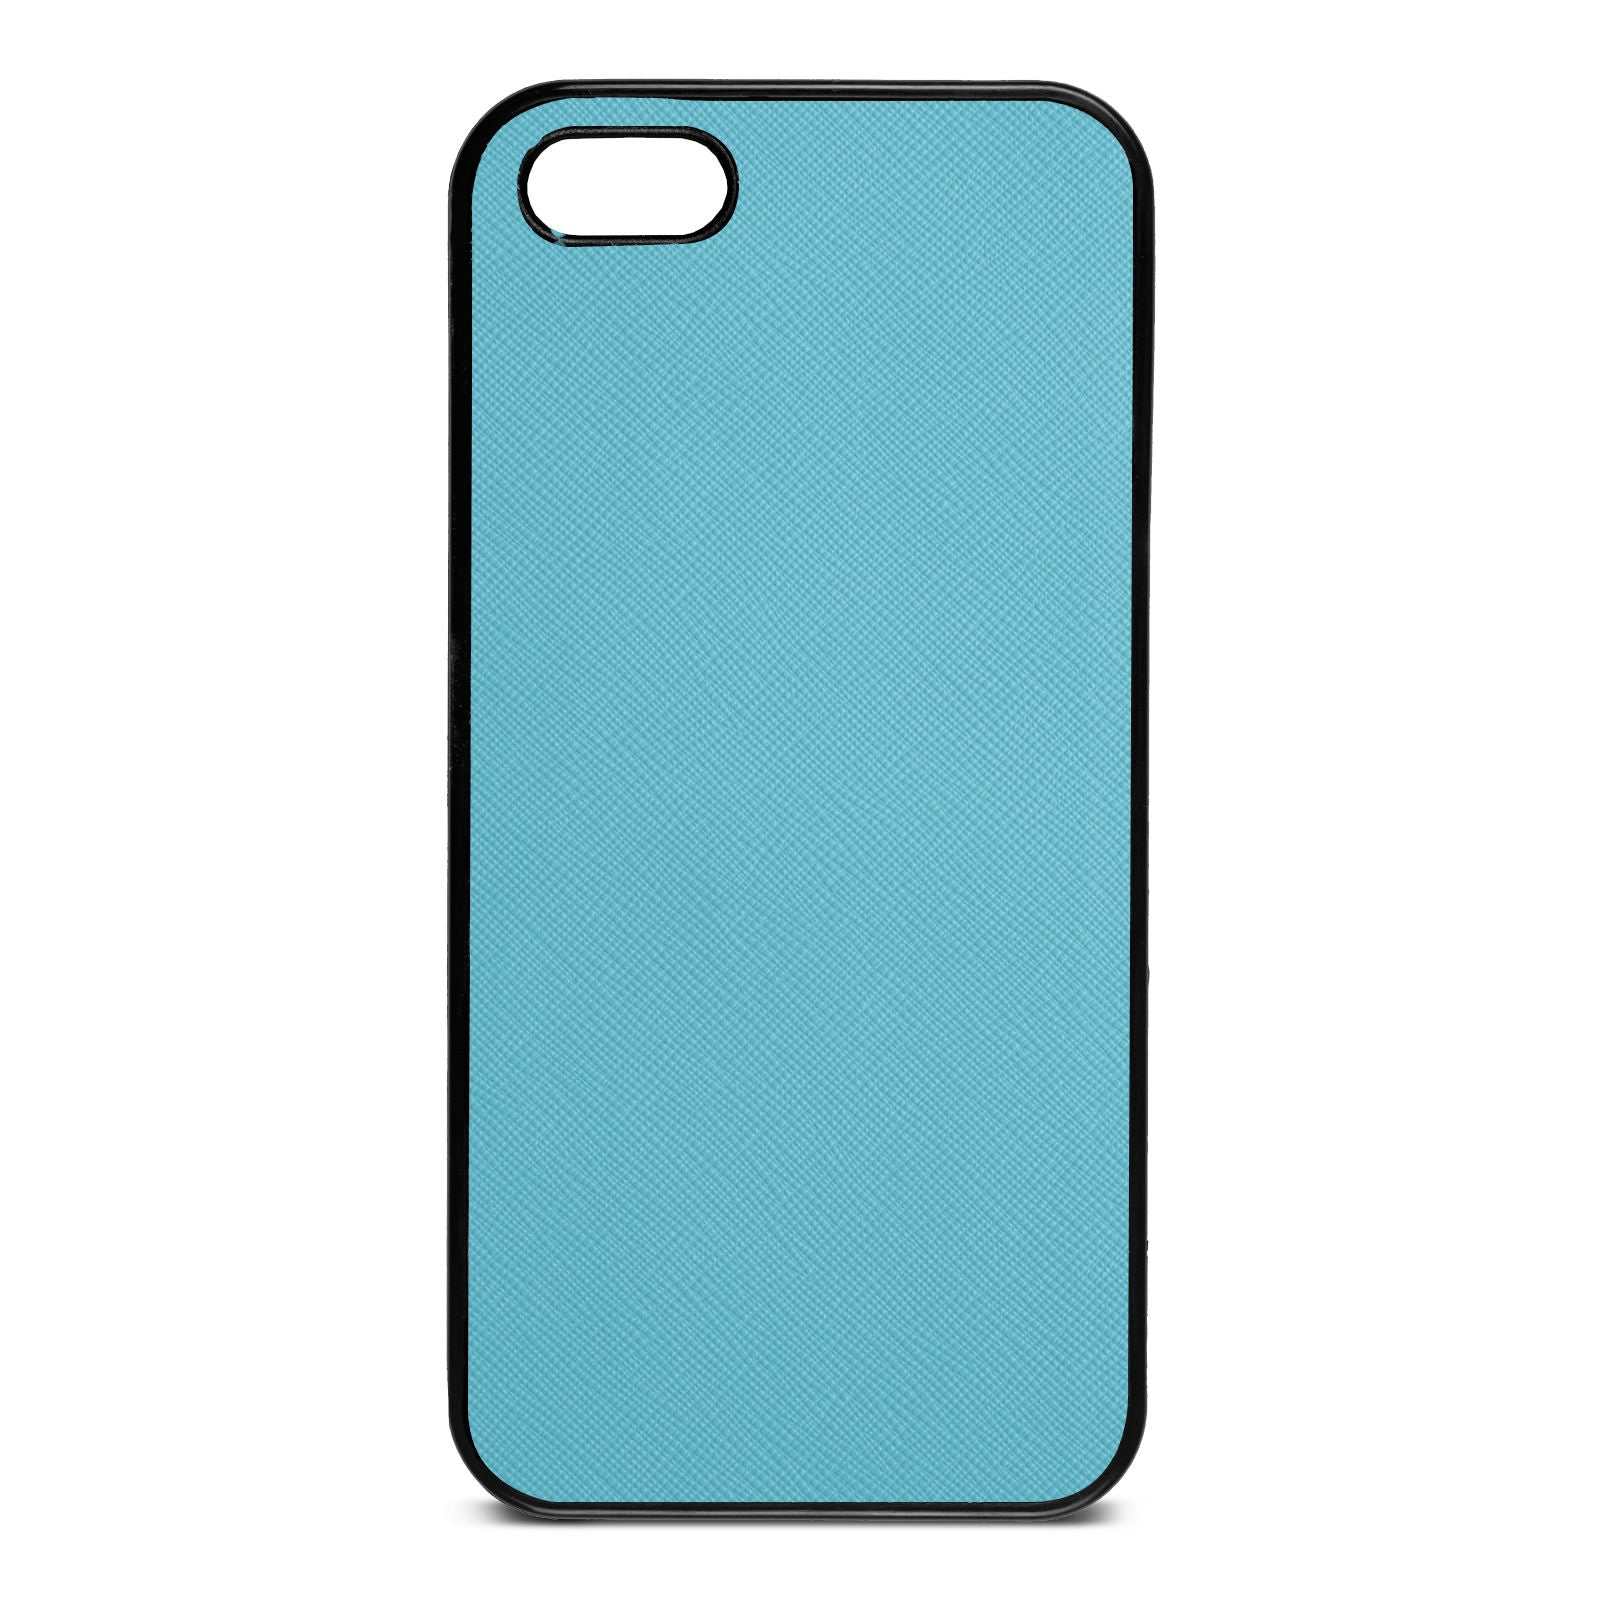 Blank Personalised Sky Blue Saffiano Leather iPhone 5 Case